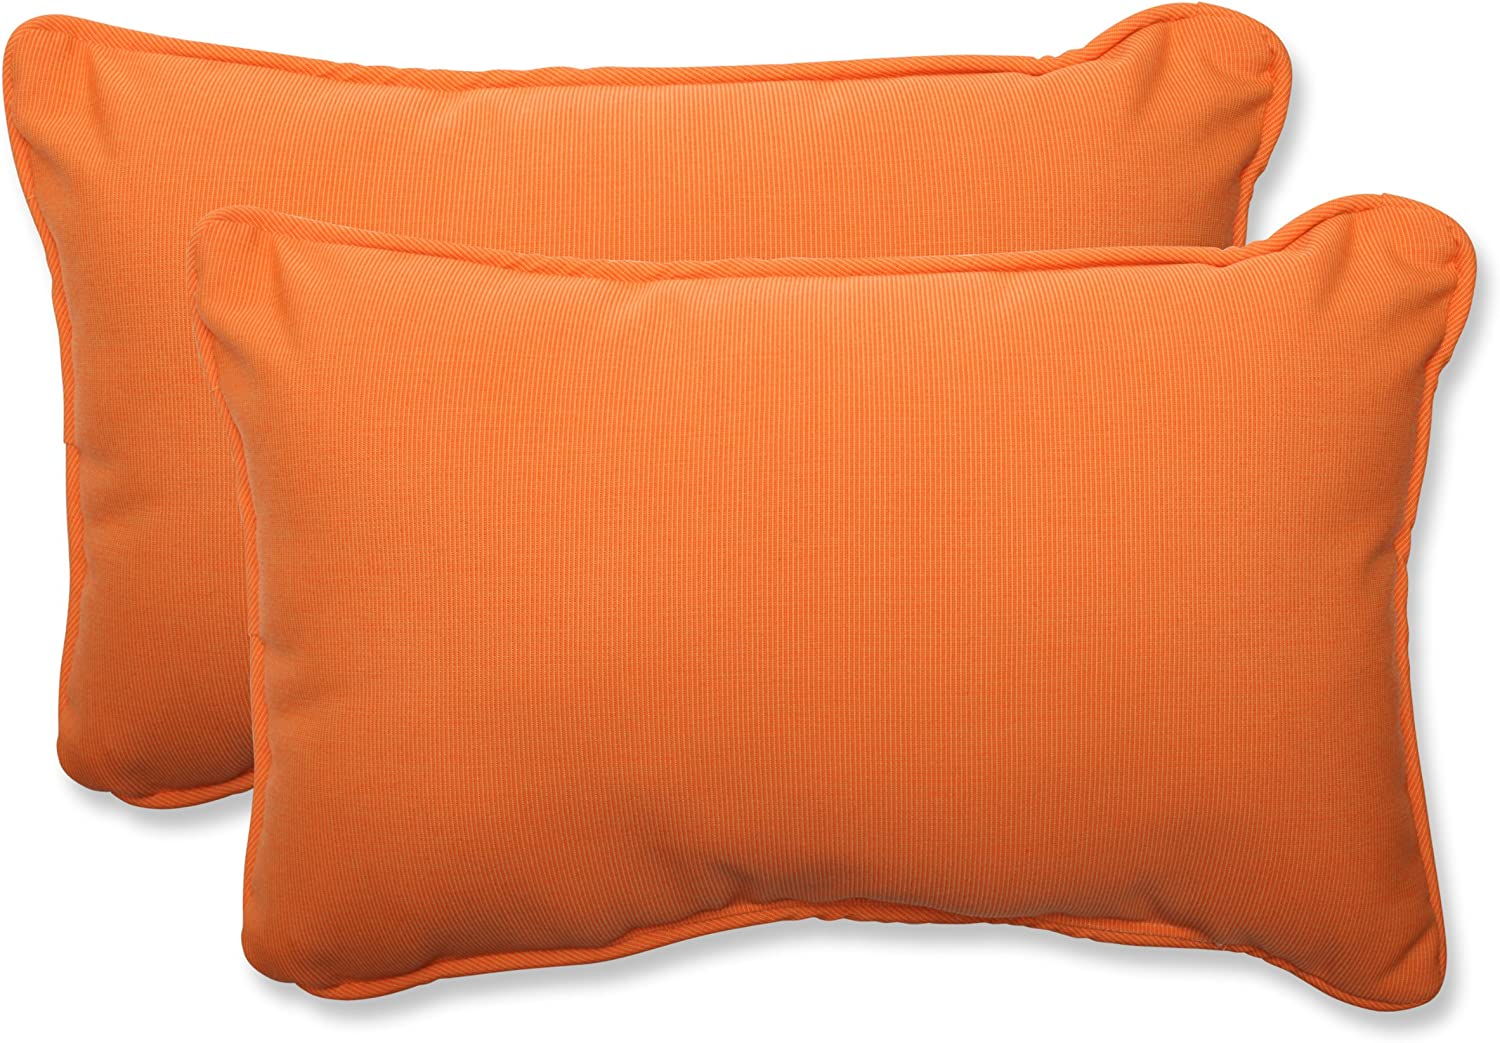 Pillow Perfect Indoor Outdoor Rectangular Throw Pillow (Set of 2) with Sunbrella Canvas Tangerine Fabric, 18.5 in. L X 11.5 in. W X 5 in. D